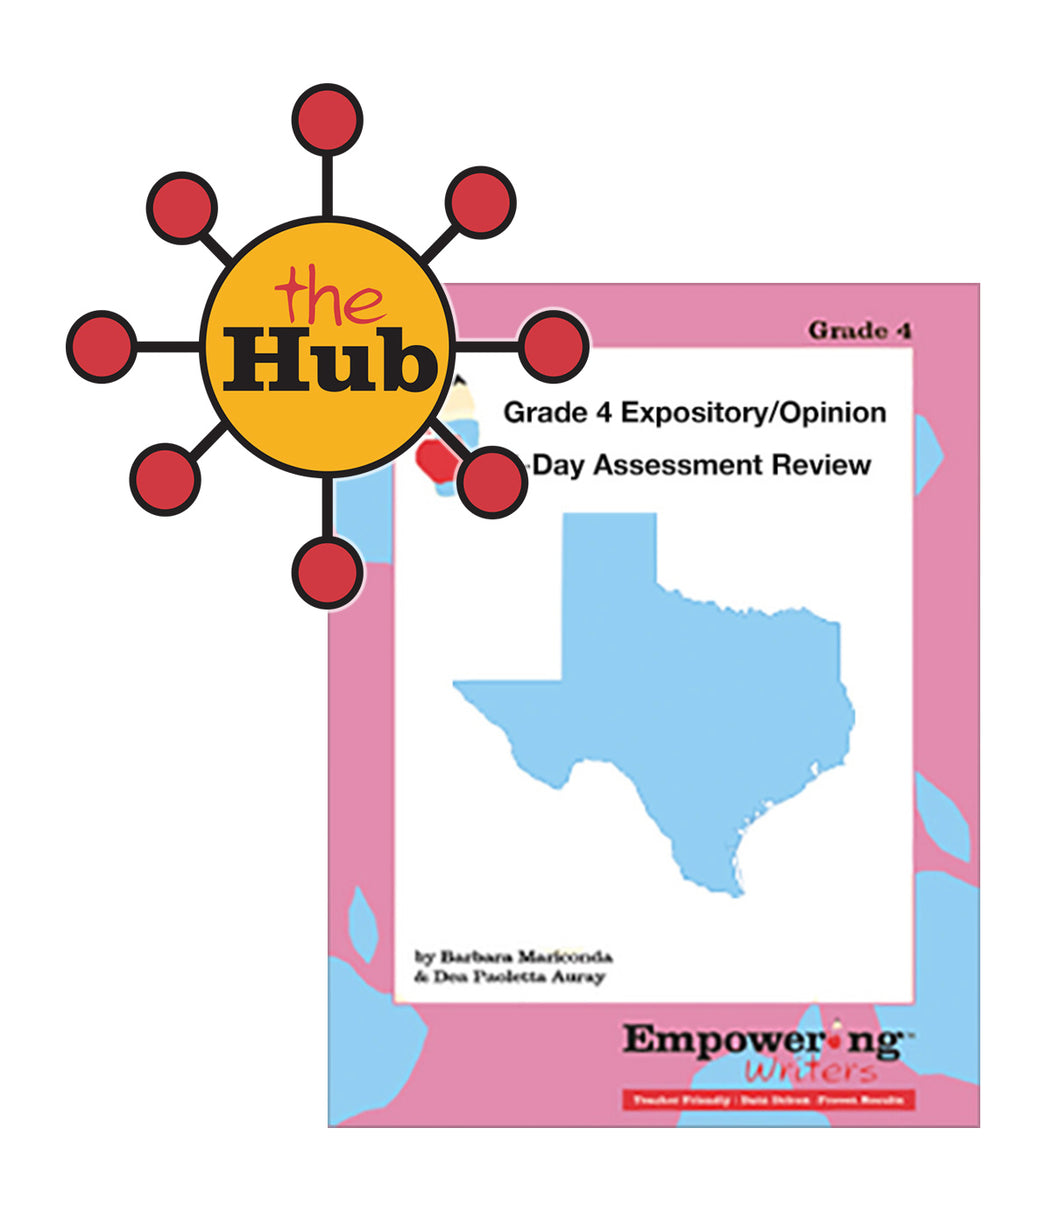 The Hub - Grade 4 Texas Expository/Opinion Assessment Review